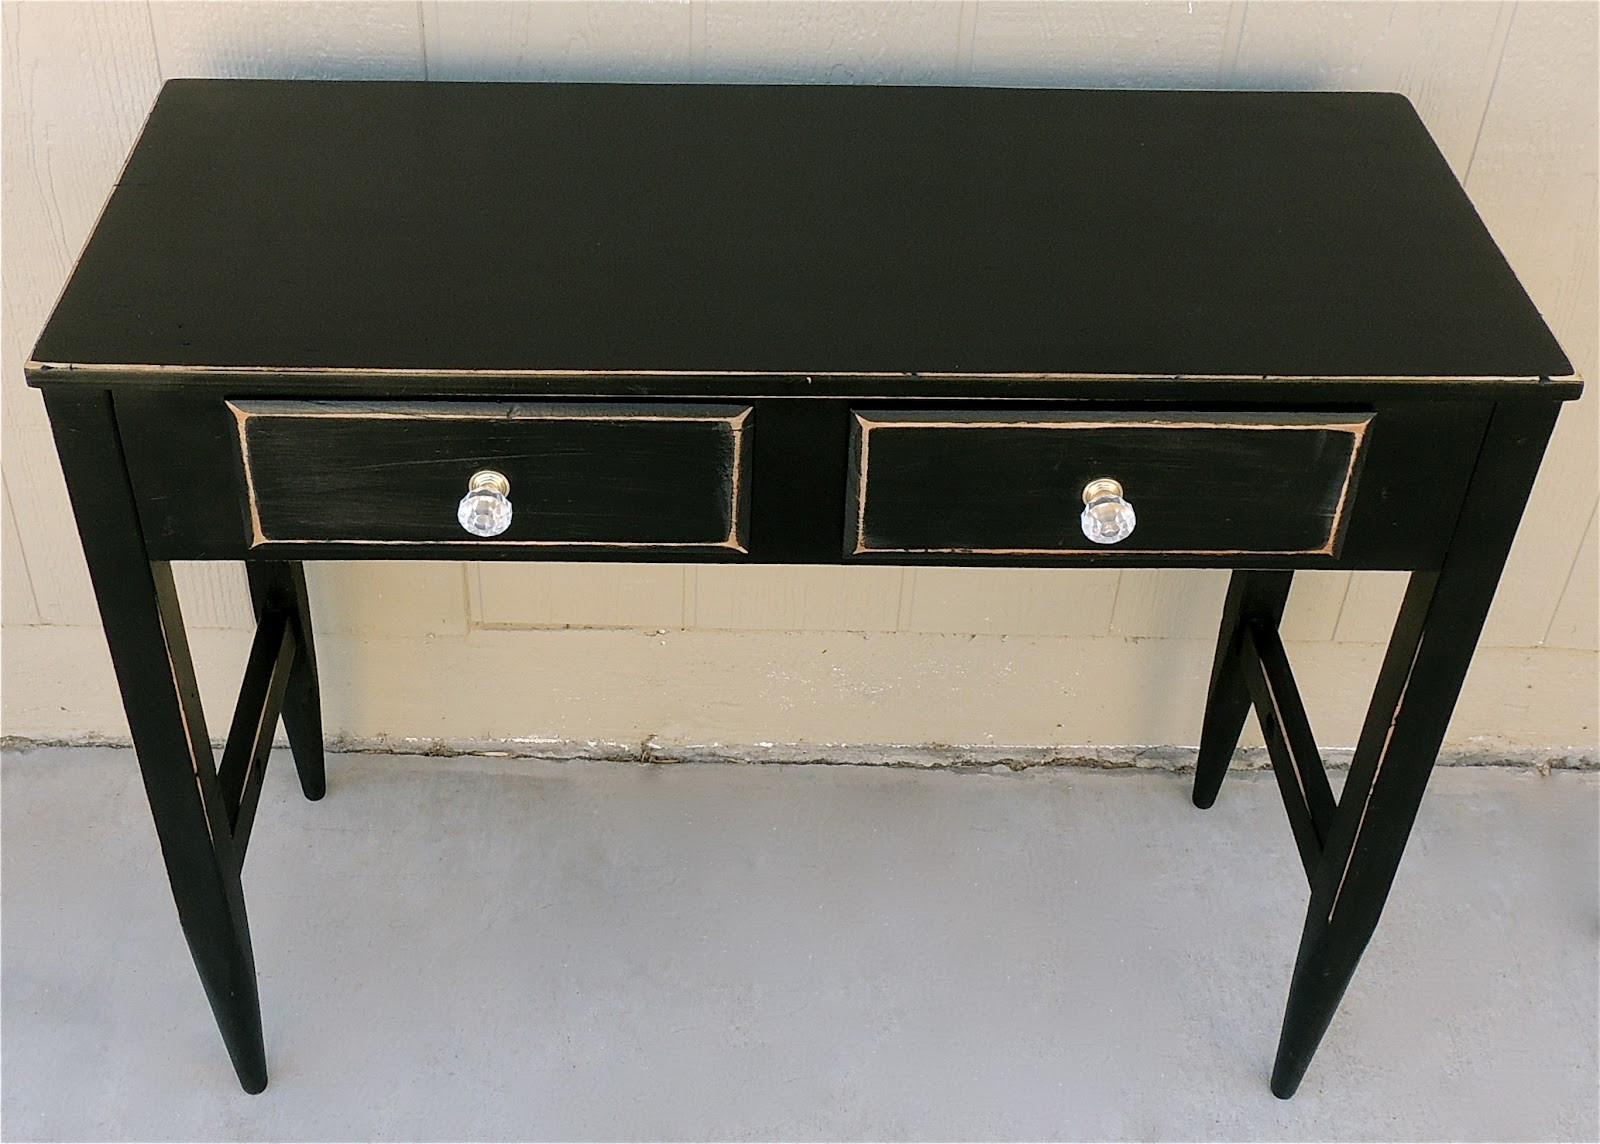 Best ideas about Distressed Entryway Table . Save or Pin The Backyard Boutique by Five to Nine Furnishings Black Now.